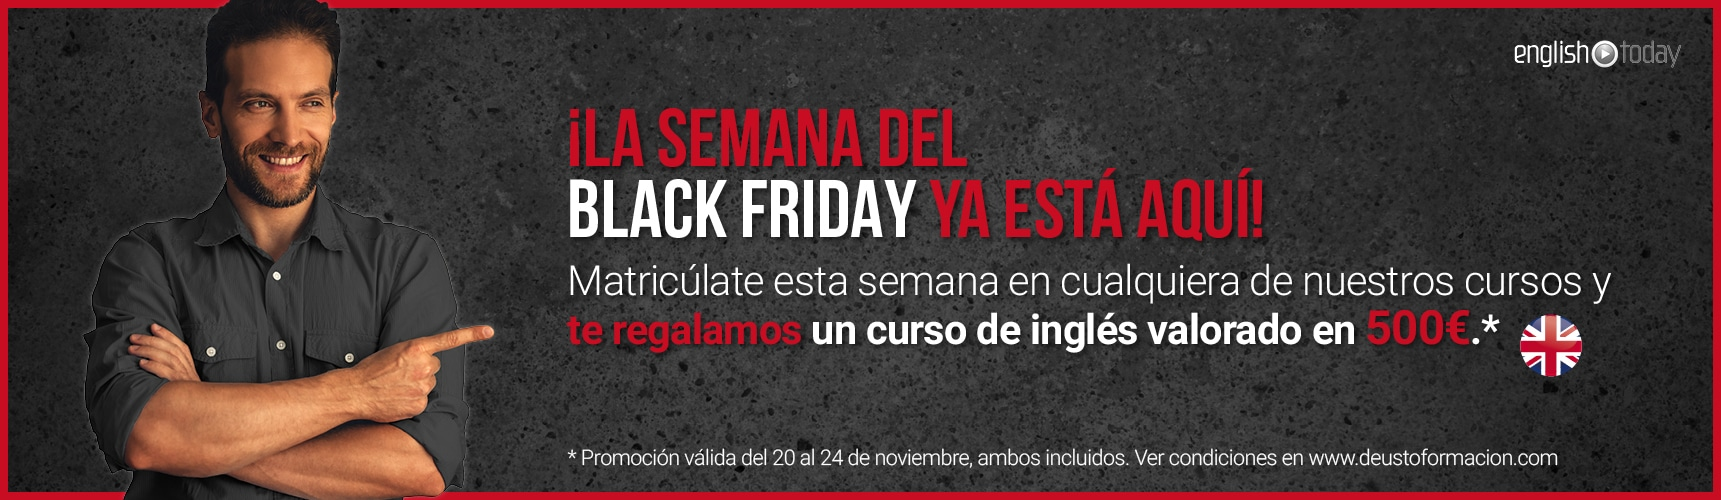 Promoción Black Friday